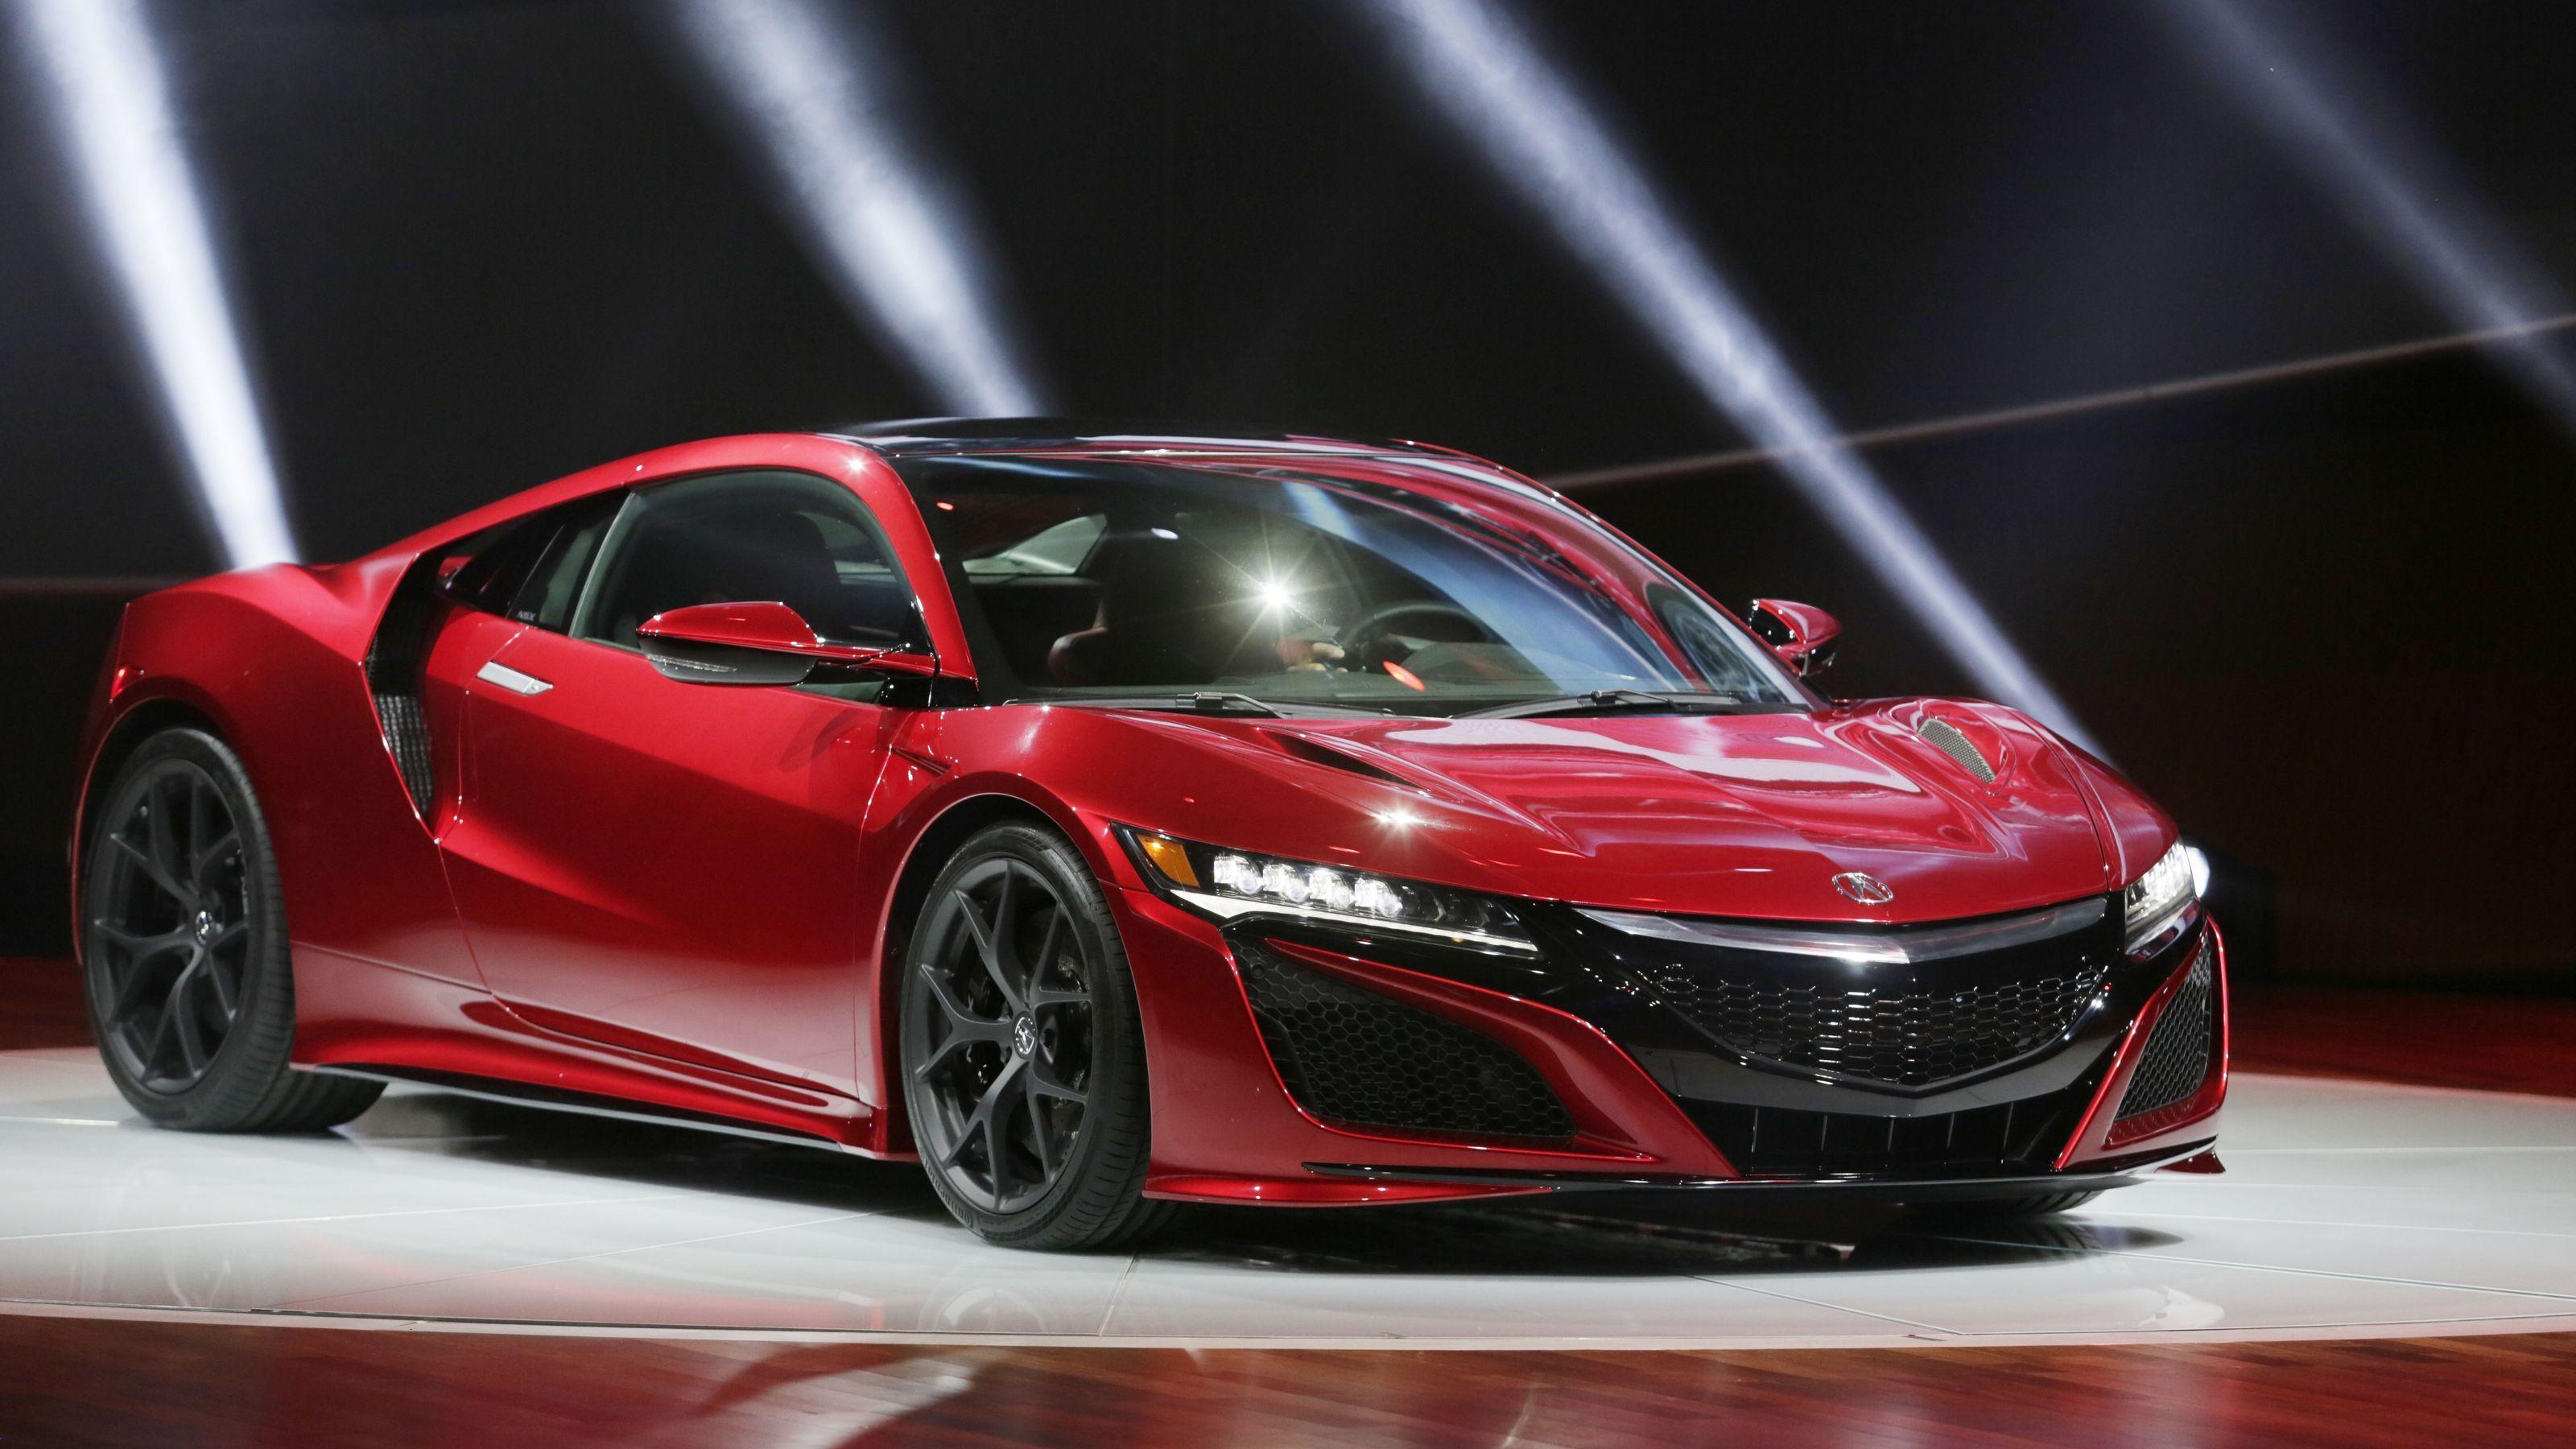 17 Best ideas about Acura Nsx Price